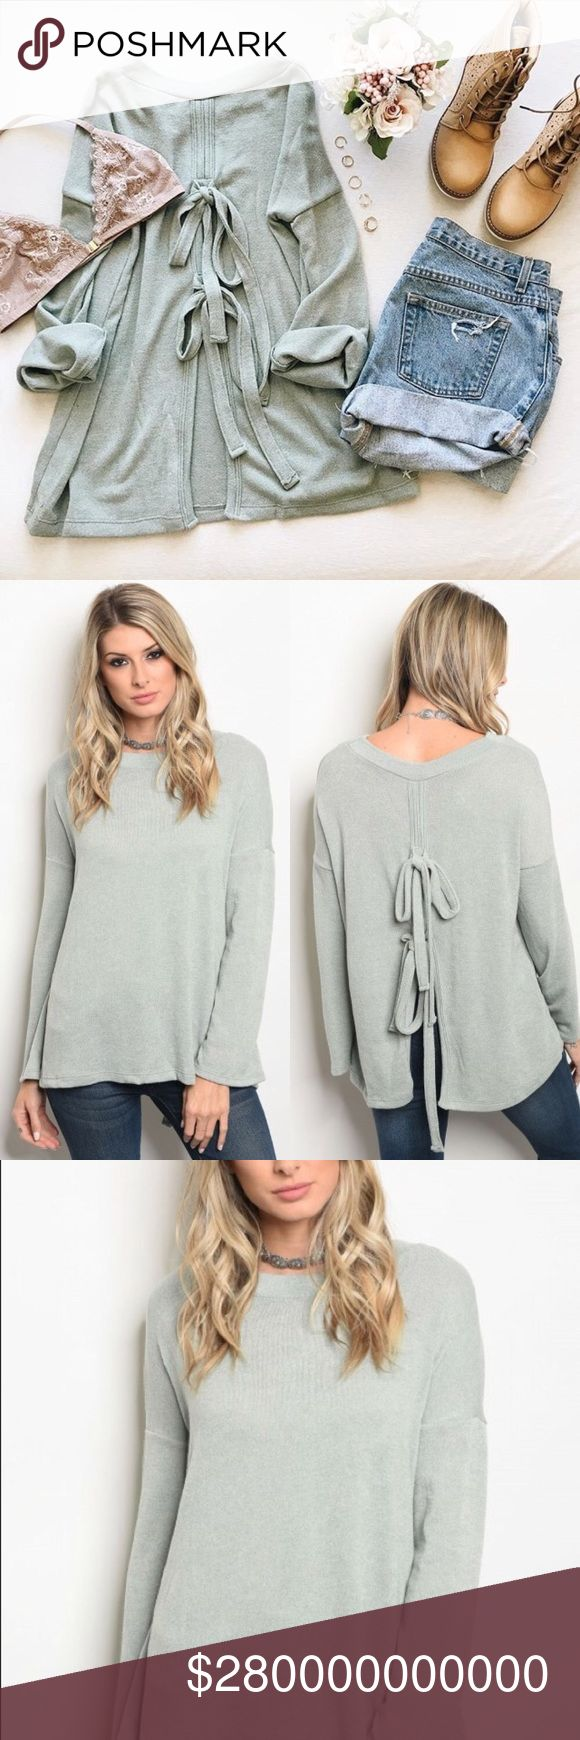 🍃COMING SOON🍃 Mint Long Sleeve Sweater Top 🍃 Sage/mint lightweight sweater with a tie accent on the back.  Polyester/spandex blend. Tops Blouses